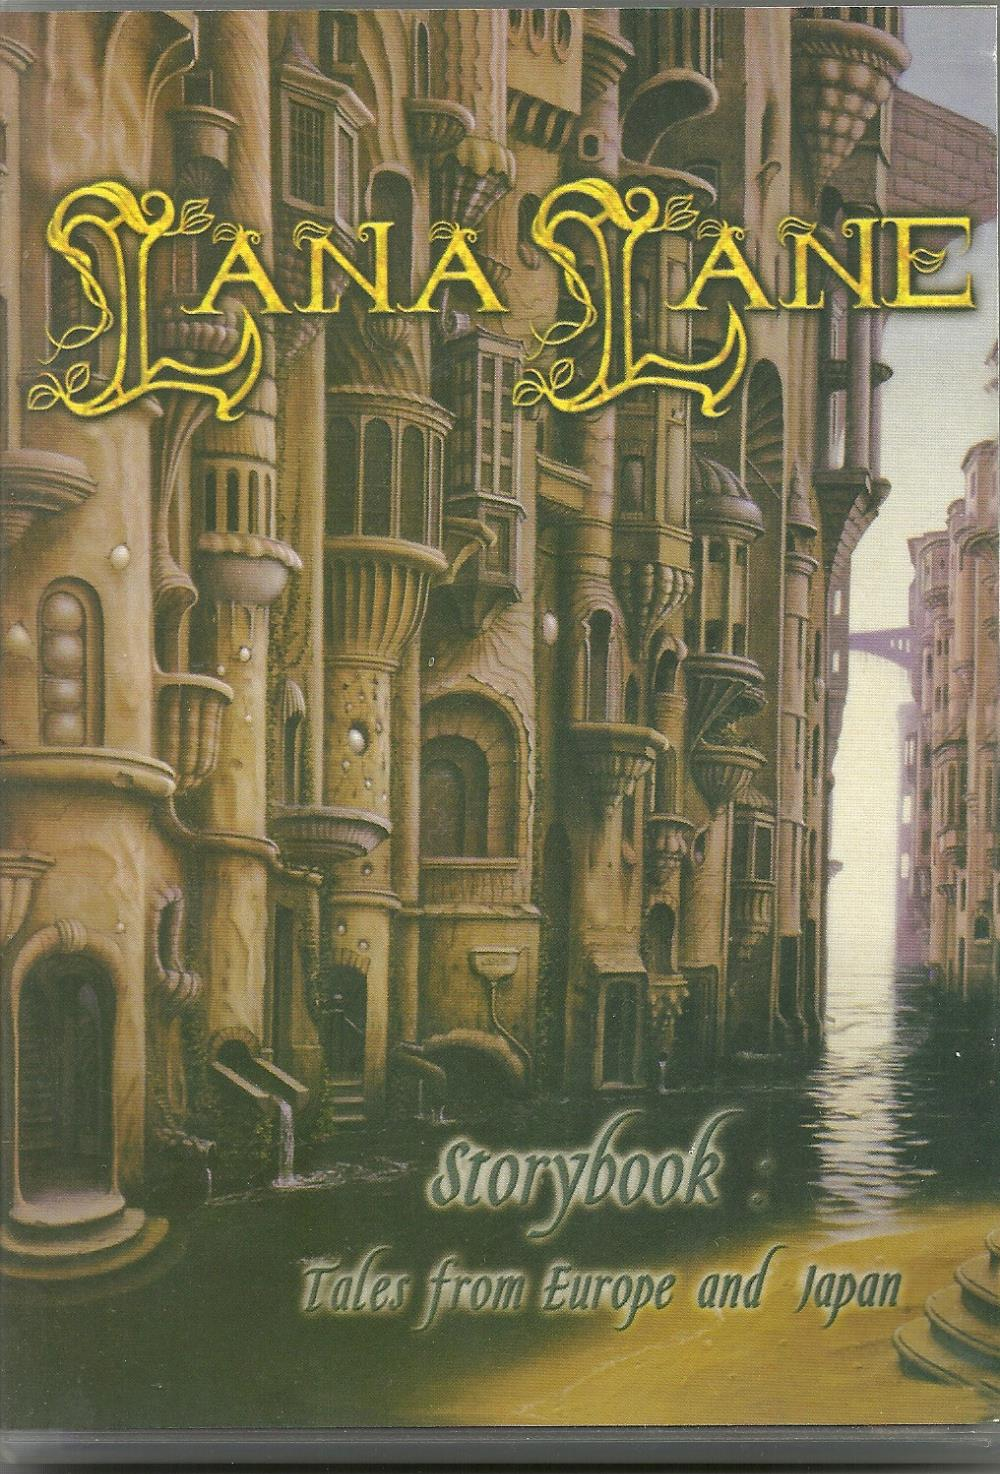 Storybook - Tales From Europe and Japan by LANE, LANA album cover